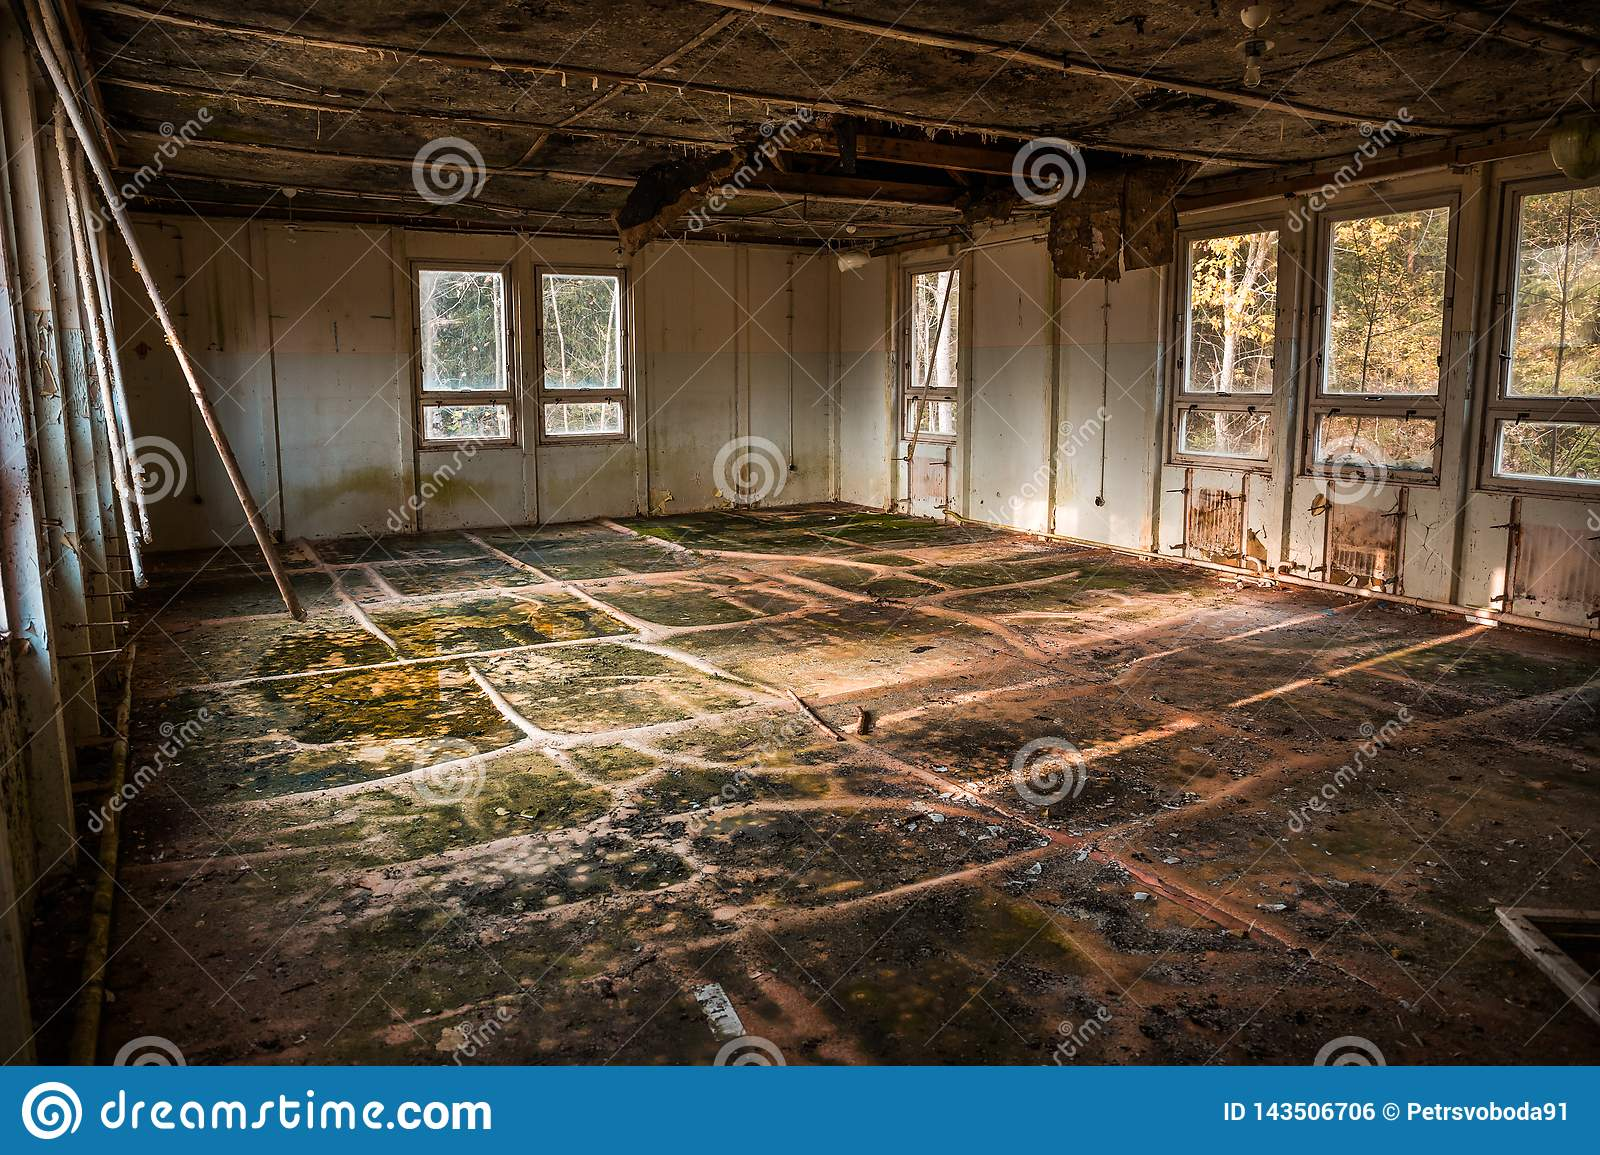 Devastated room in an abandoned building, urbex location